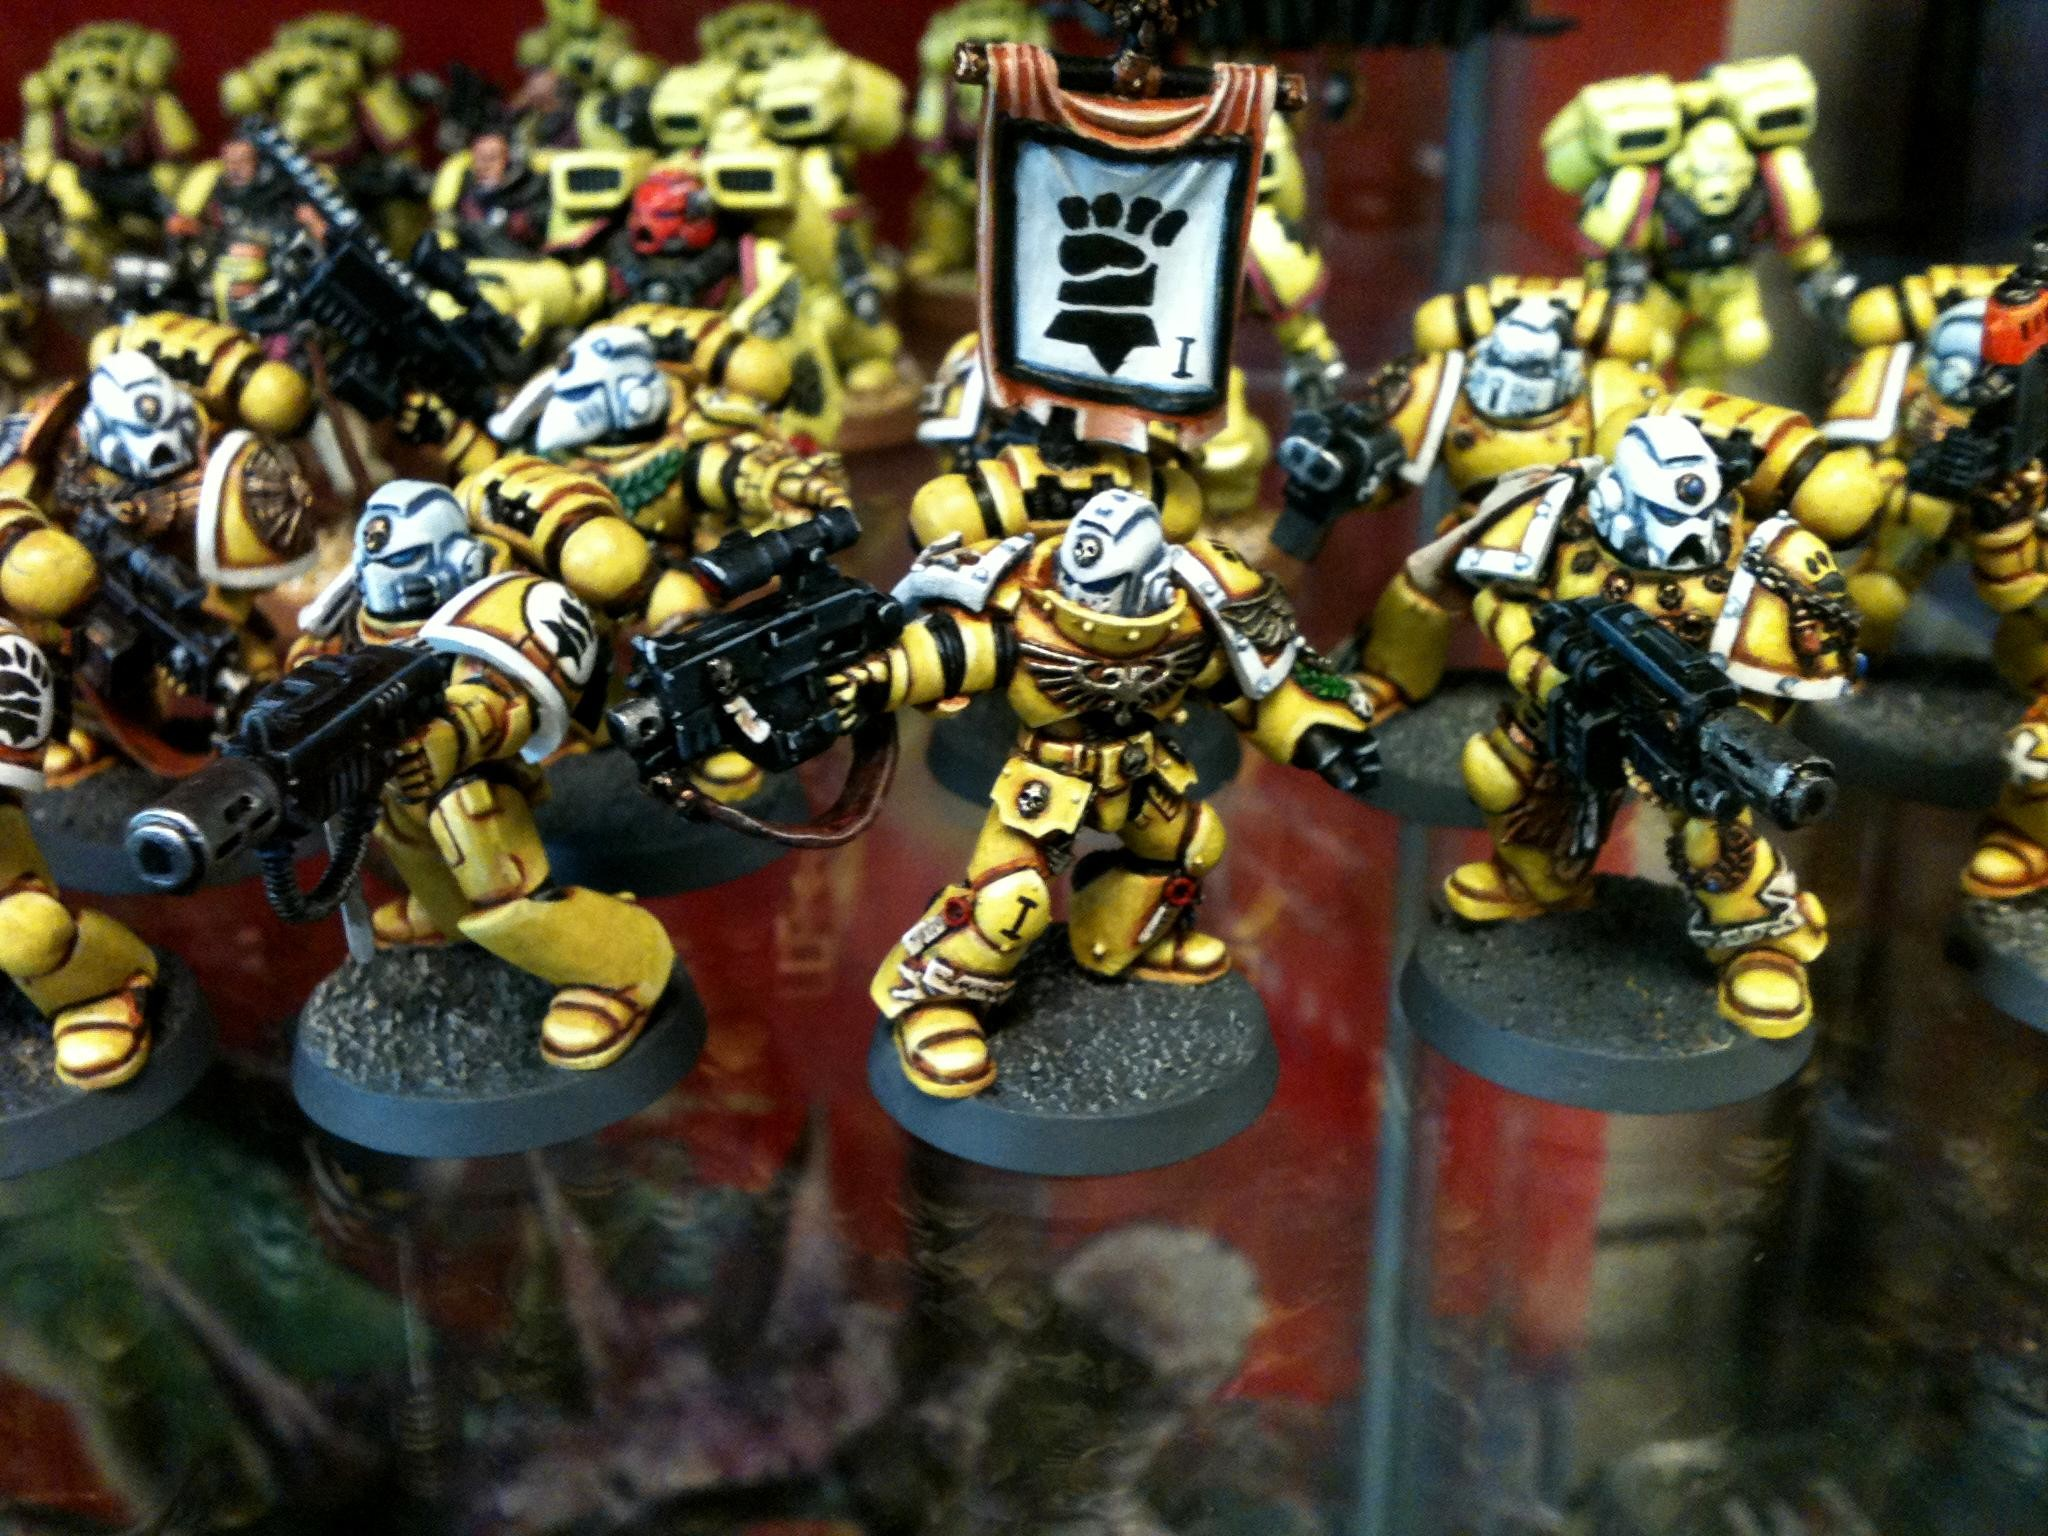 2048x1536 Fist, Fists, Imperial, Stern, Sternguard - Imperial Fist Sternguard -  Gallery - DakkaDakka | We've got a Strategy Rating of 4.